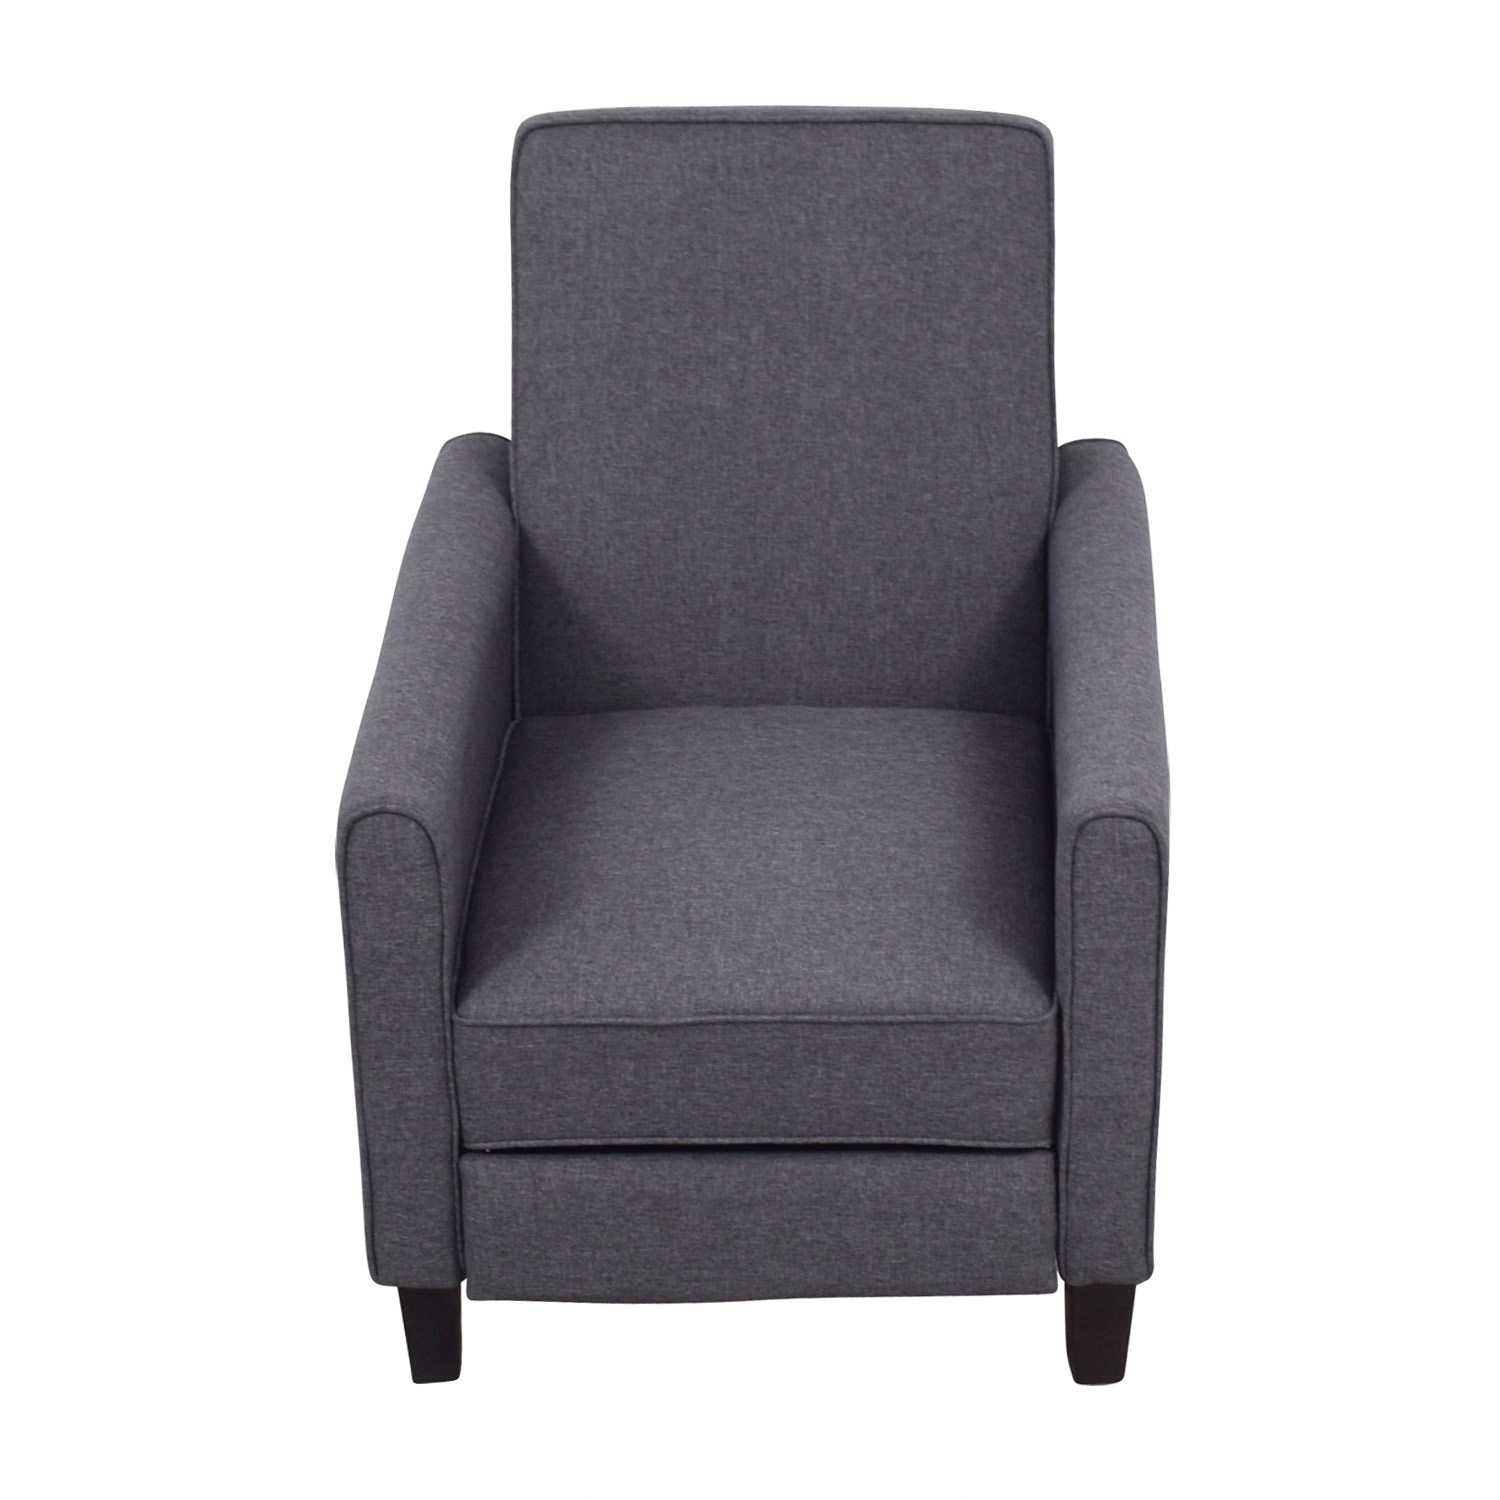 buy Christopher Knight Home Christopher Knight Home Darvis Grey Recliner Club Chair online